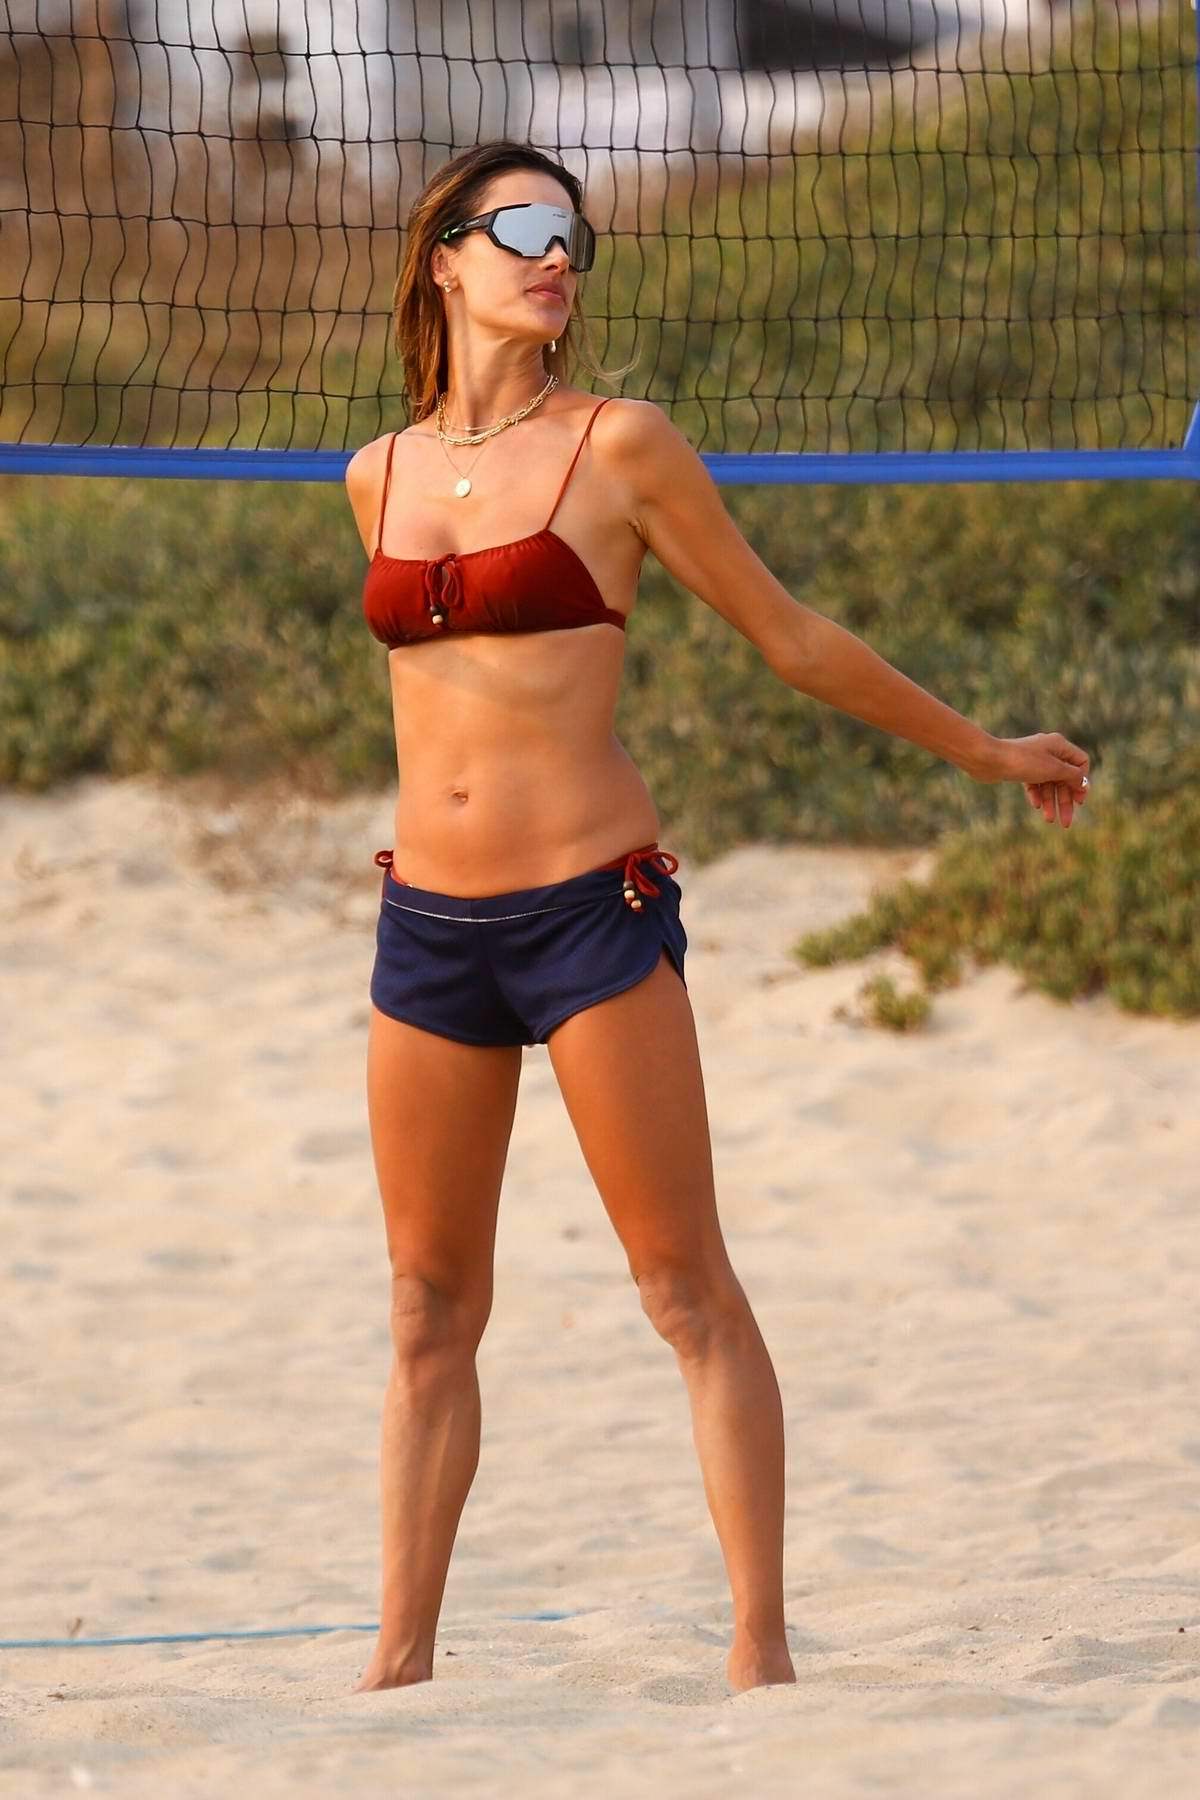 Alessandra Ambrosio flaunts her amazing physique during another day of beach volleyball with friends in Malibu, California